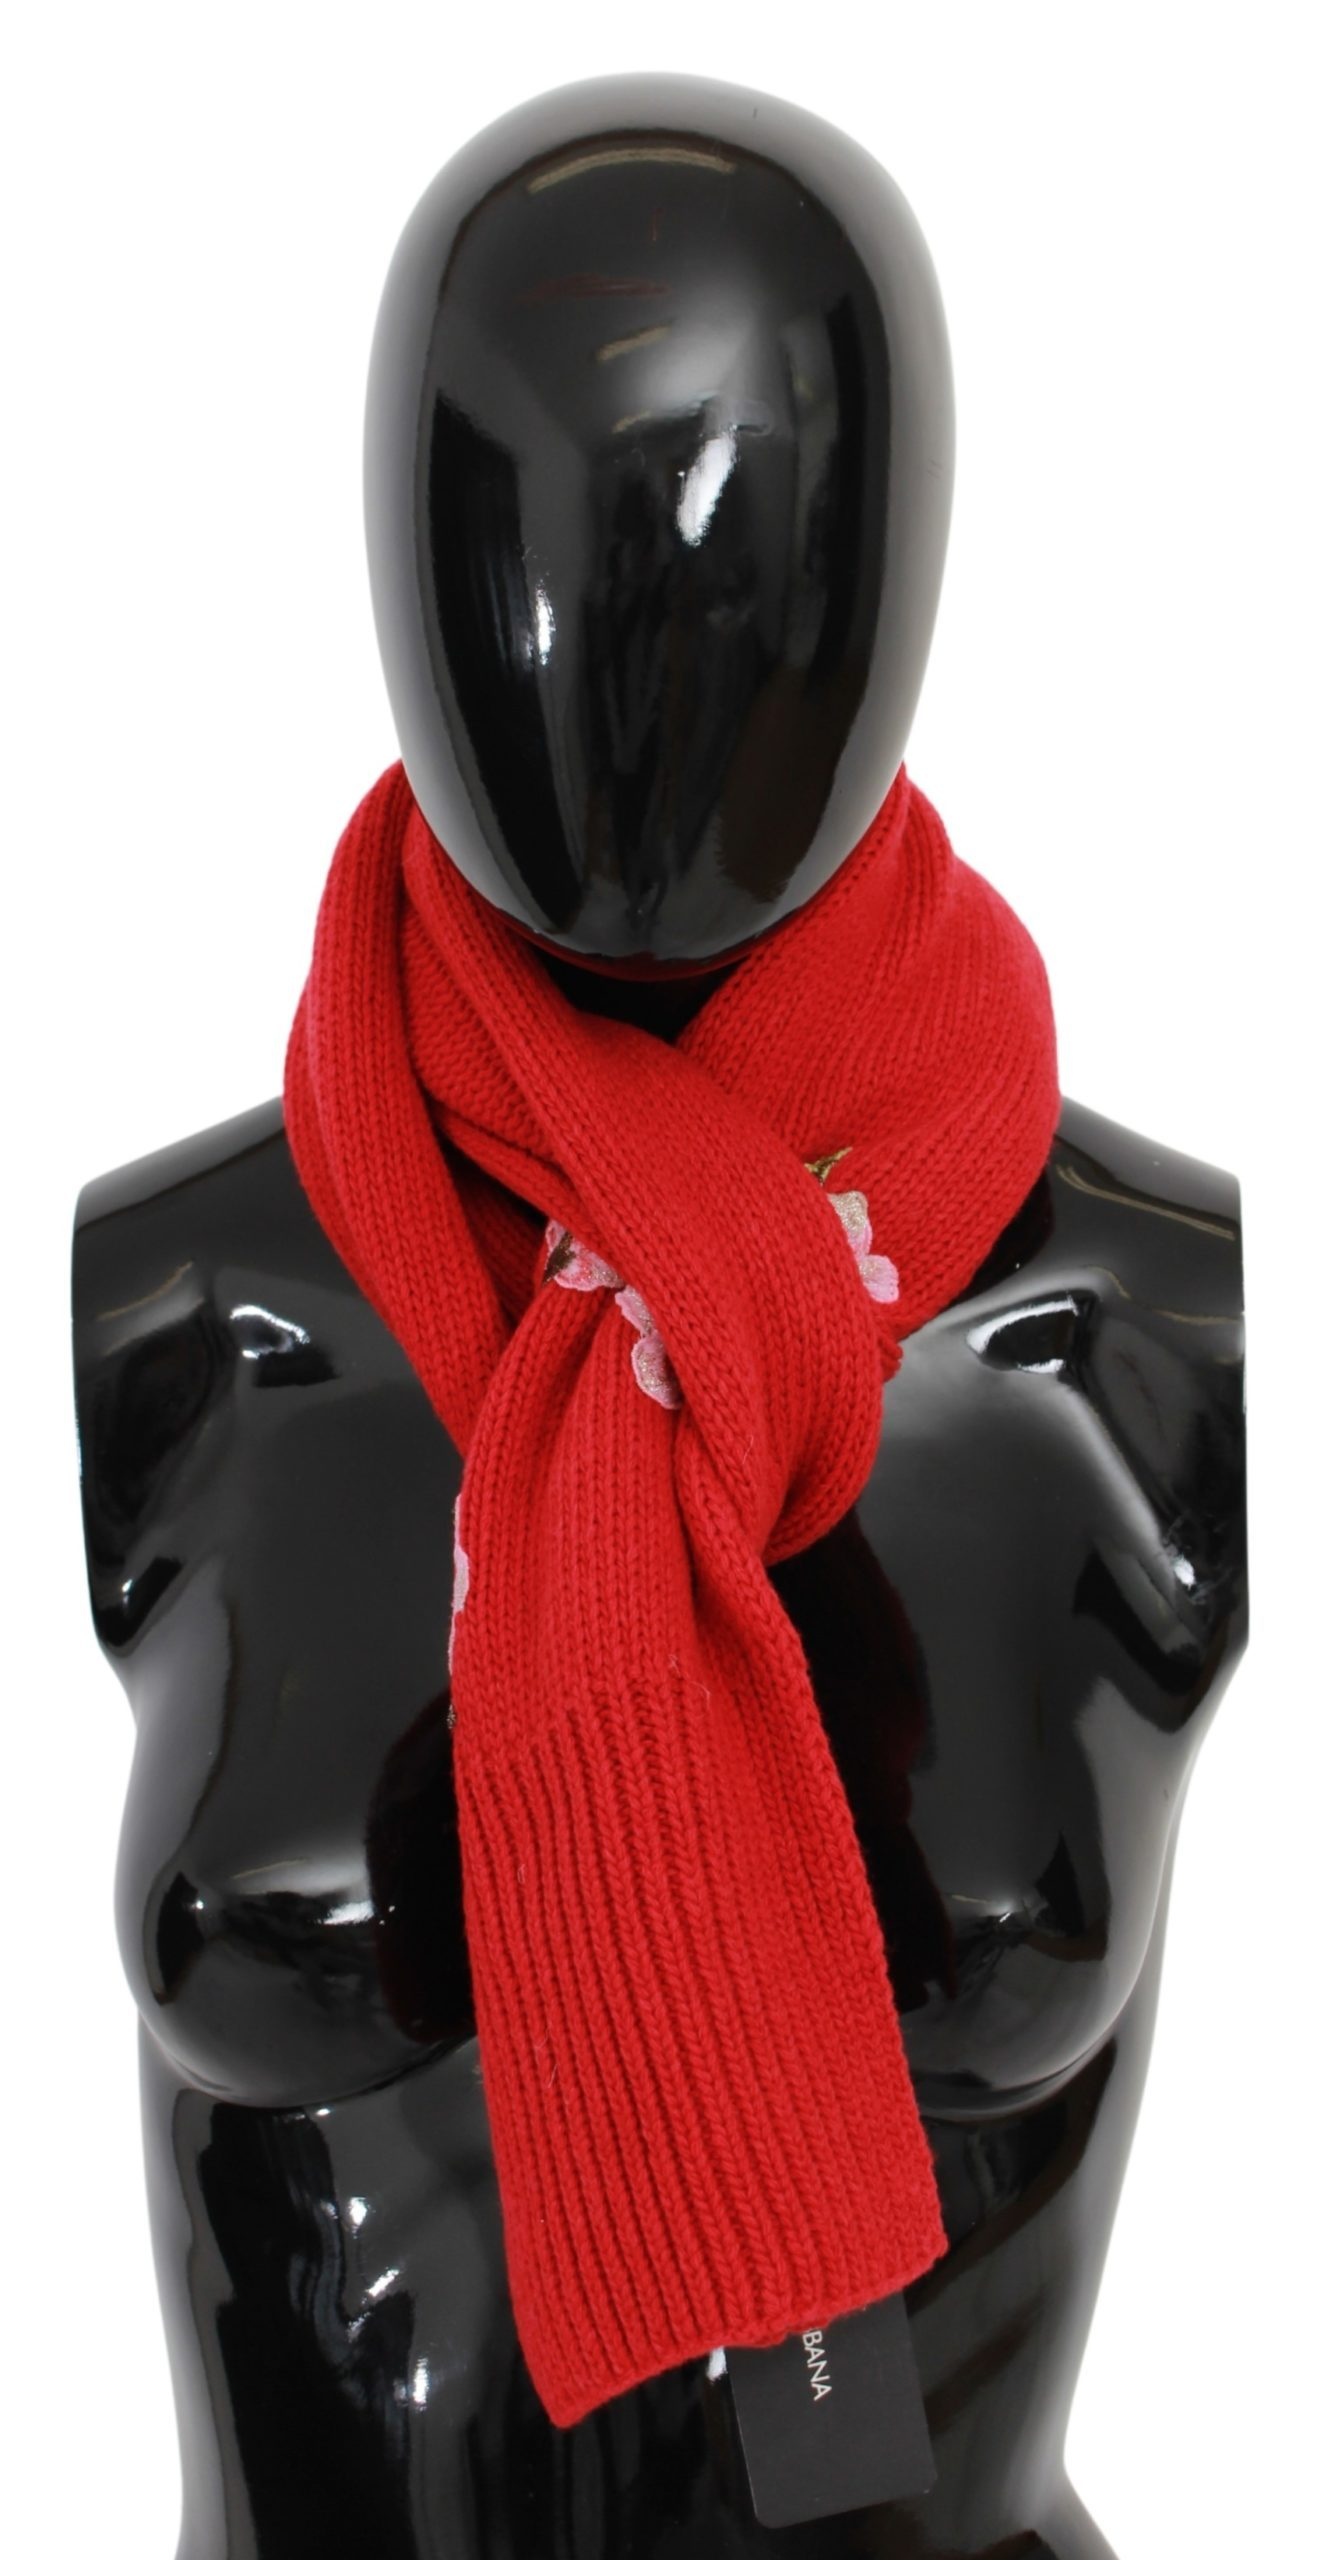 Dolce & Gabbana Women's Floral Embroidered Wrap Cashmere Scarf Red MS1678